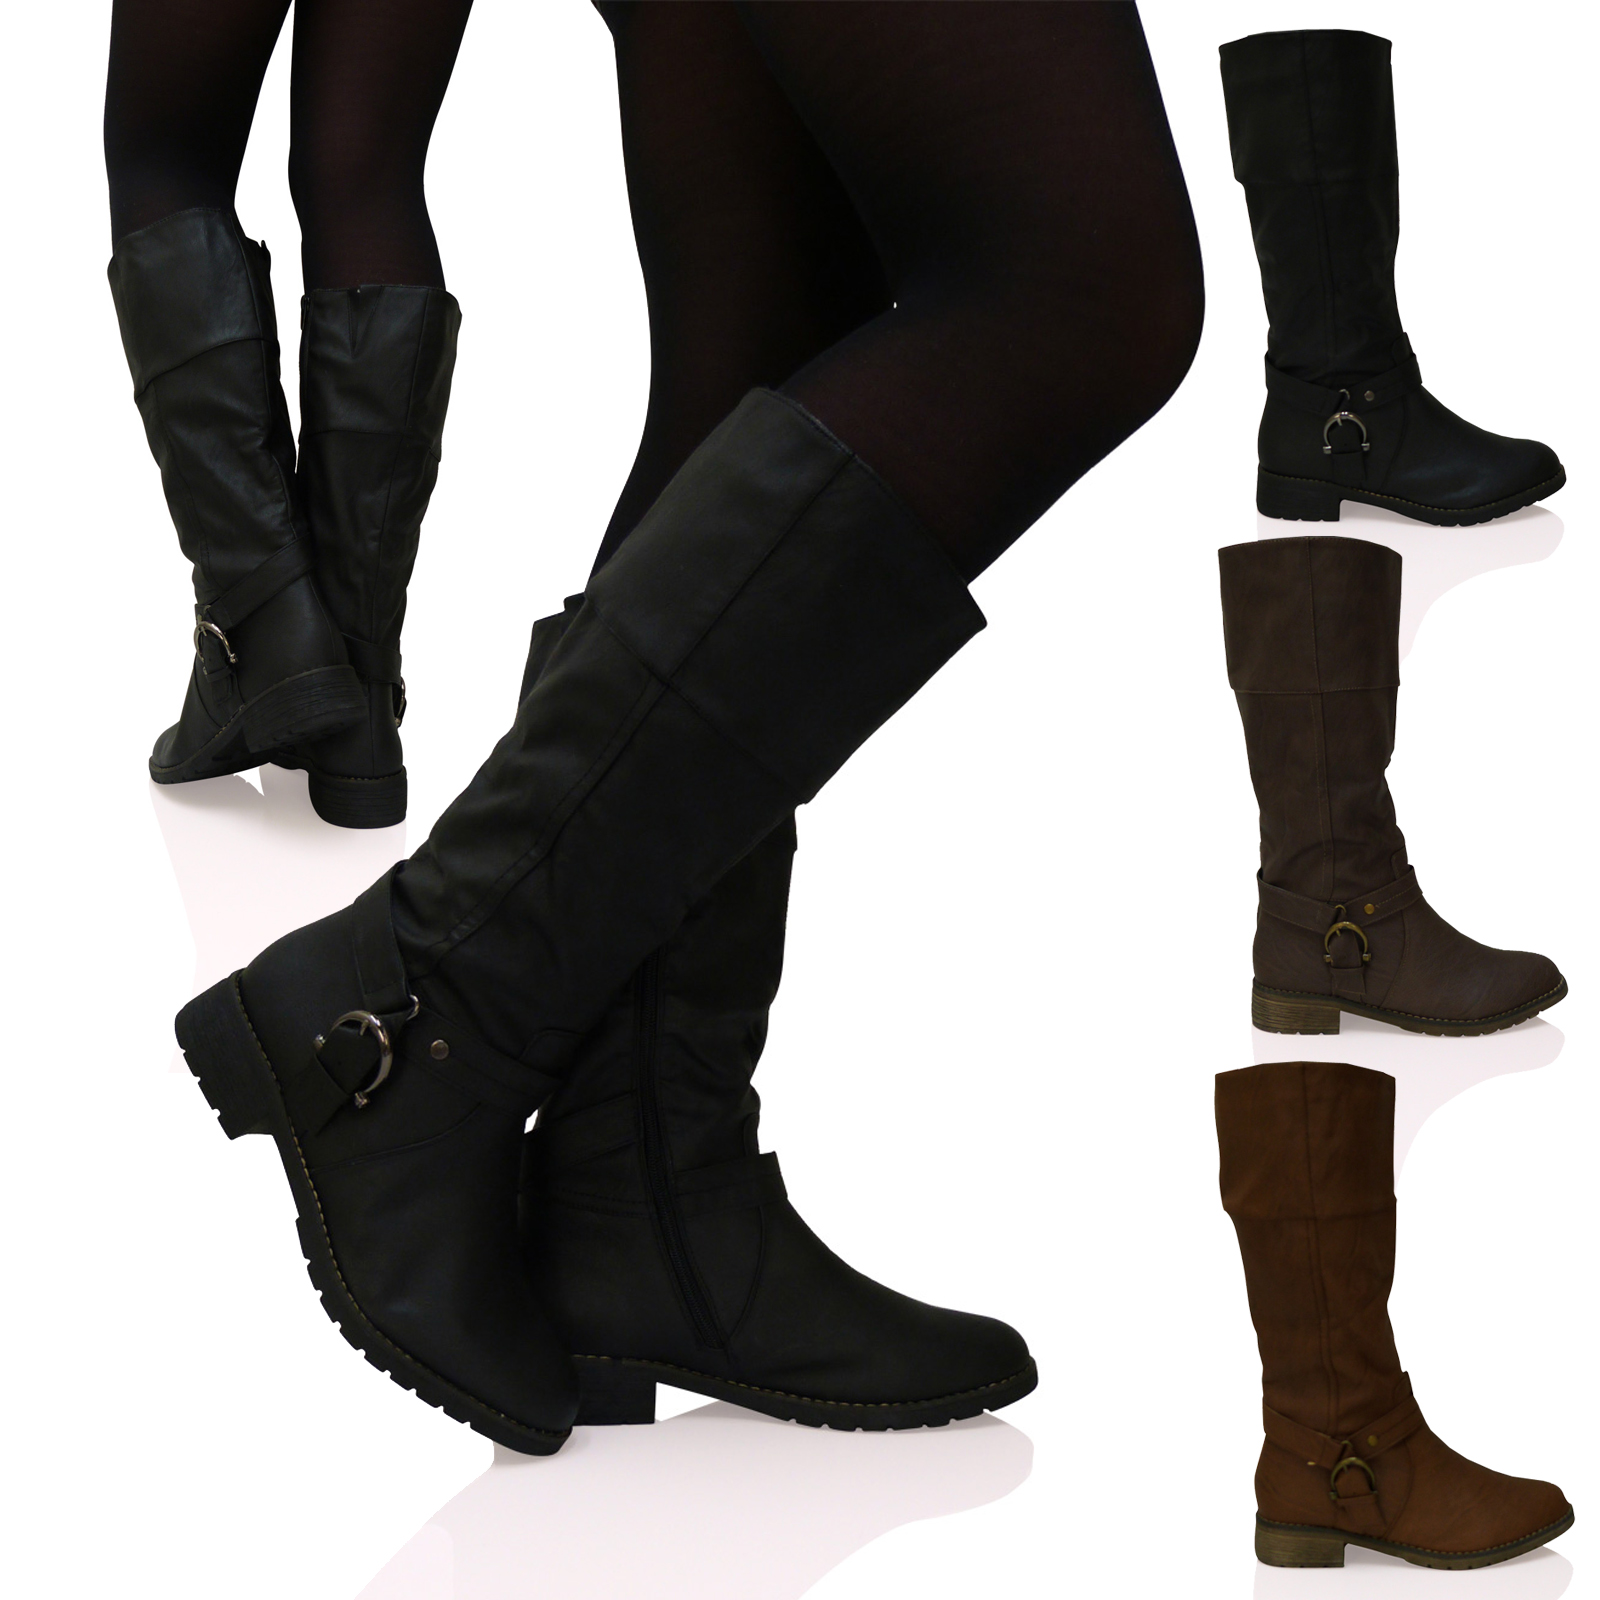 New Ladies Womens Knee High BIGGER SIZES Flat Zip Up Riding Style Boots Shoes